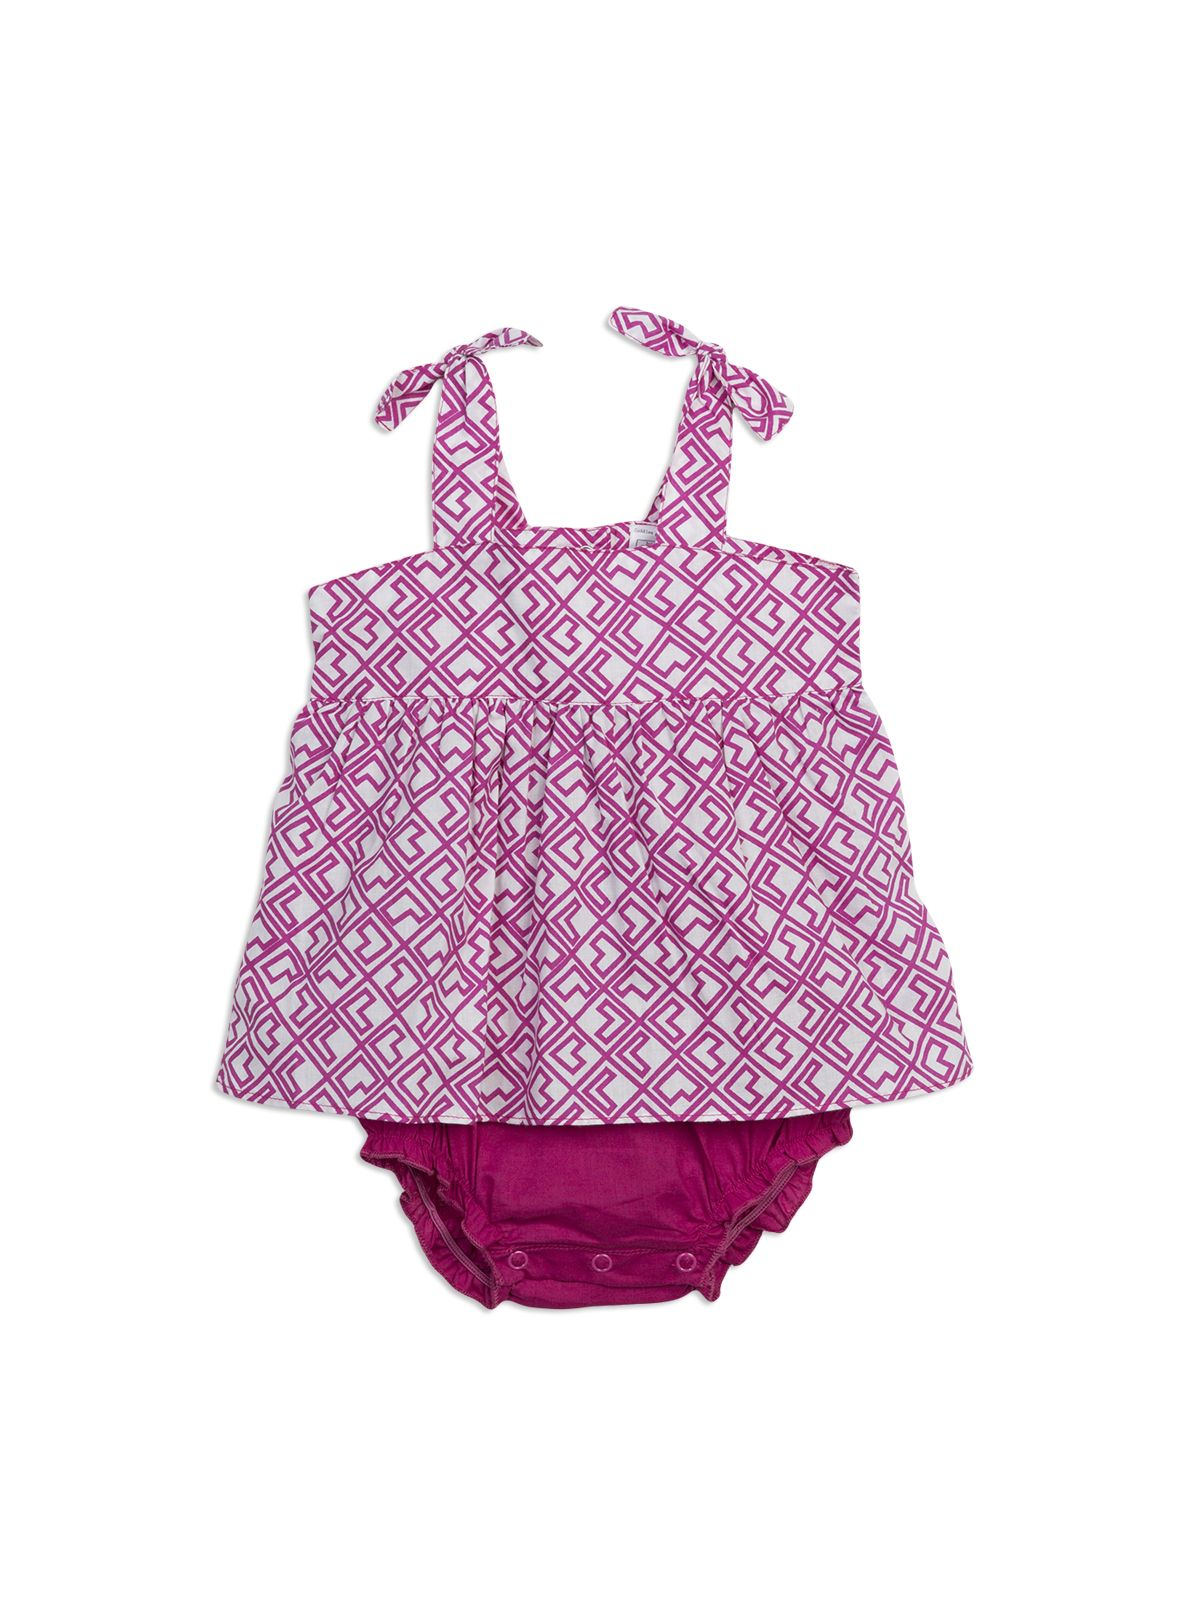 Double layer cotton romper from Charlie&me baby range. Very berry sizes 0-3m to 2. Style S5CF90001.